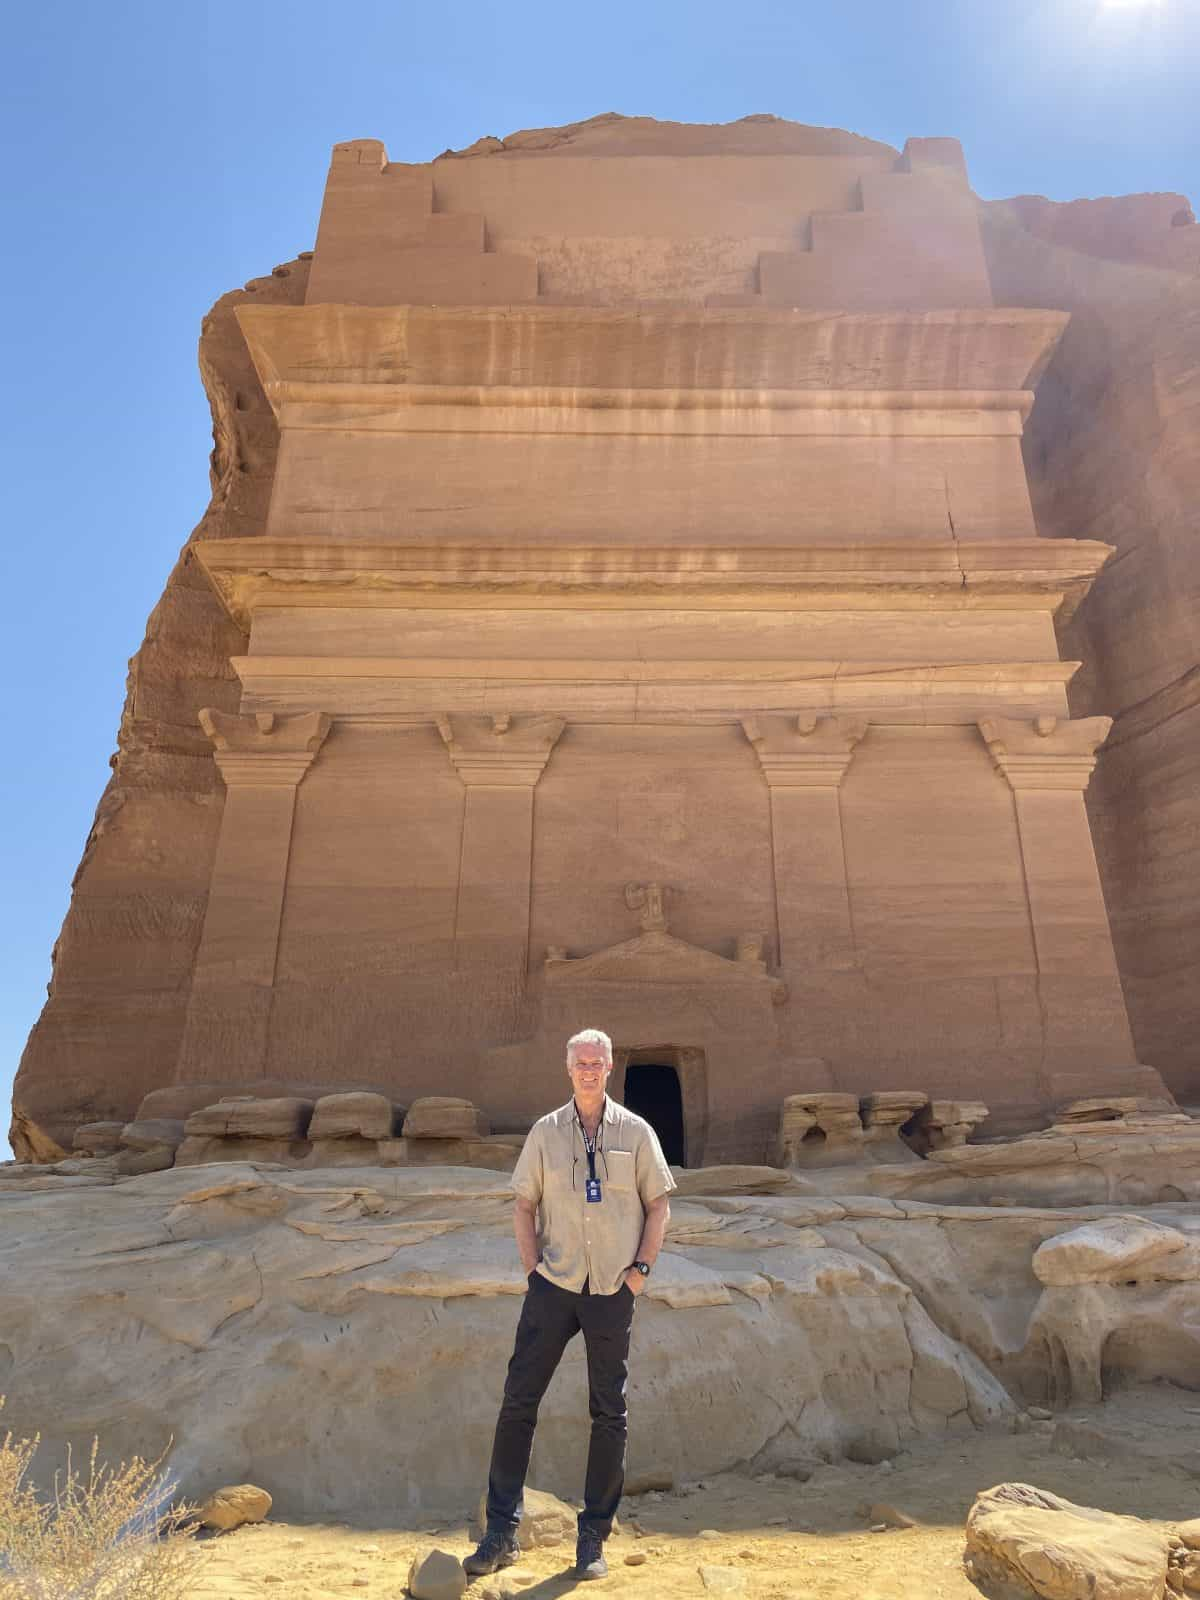 Madain Saleh: Saudi Arabia's 2,000-year-old UNESCO Heritage Site and sister city of Petra